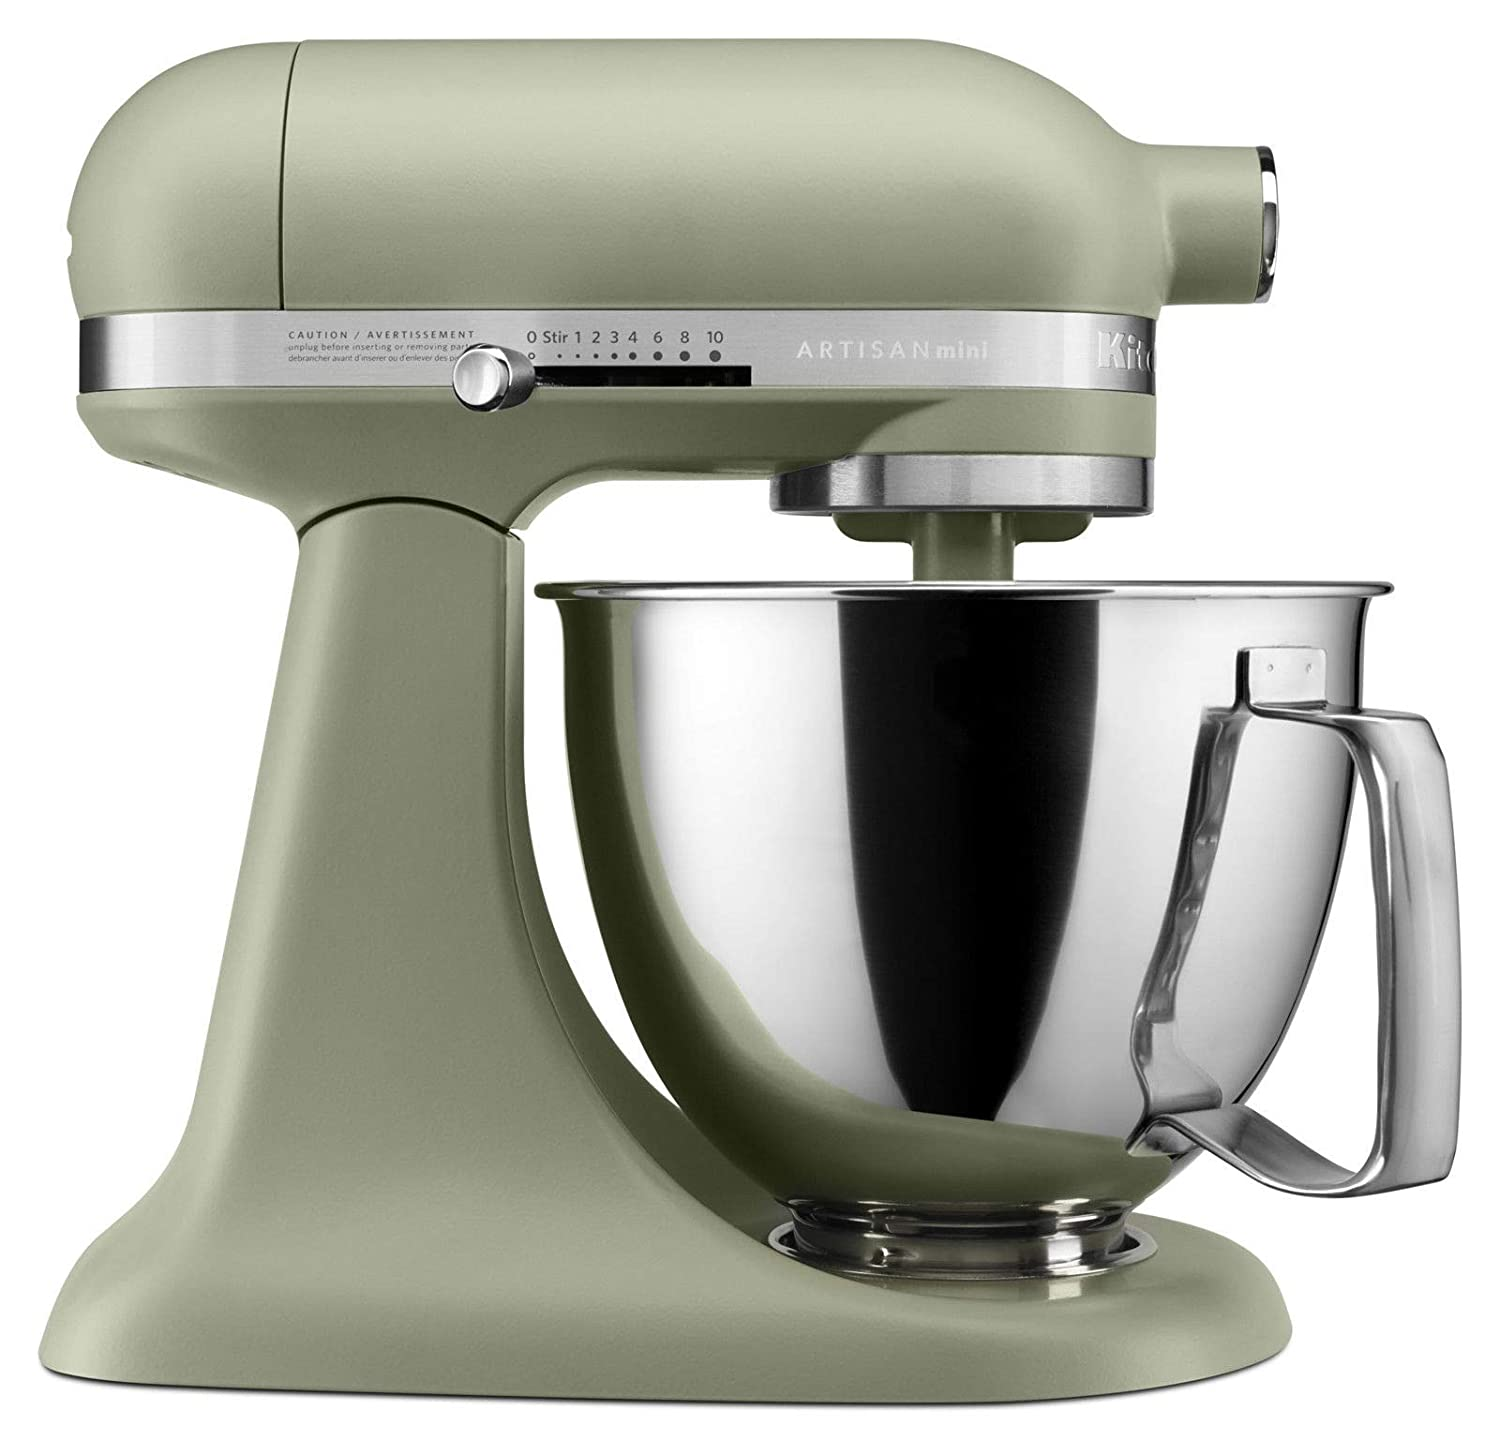 KitchenAid Artisan Mini 3.5 Quart Tilt-Head Stand Mixer, Matte Avocado Cream